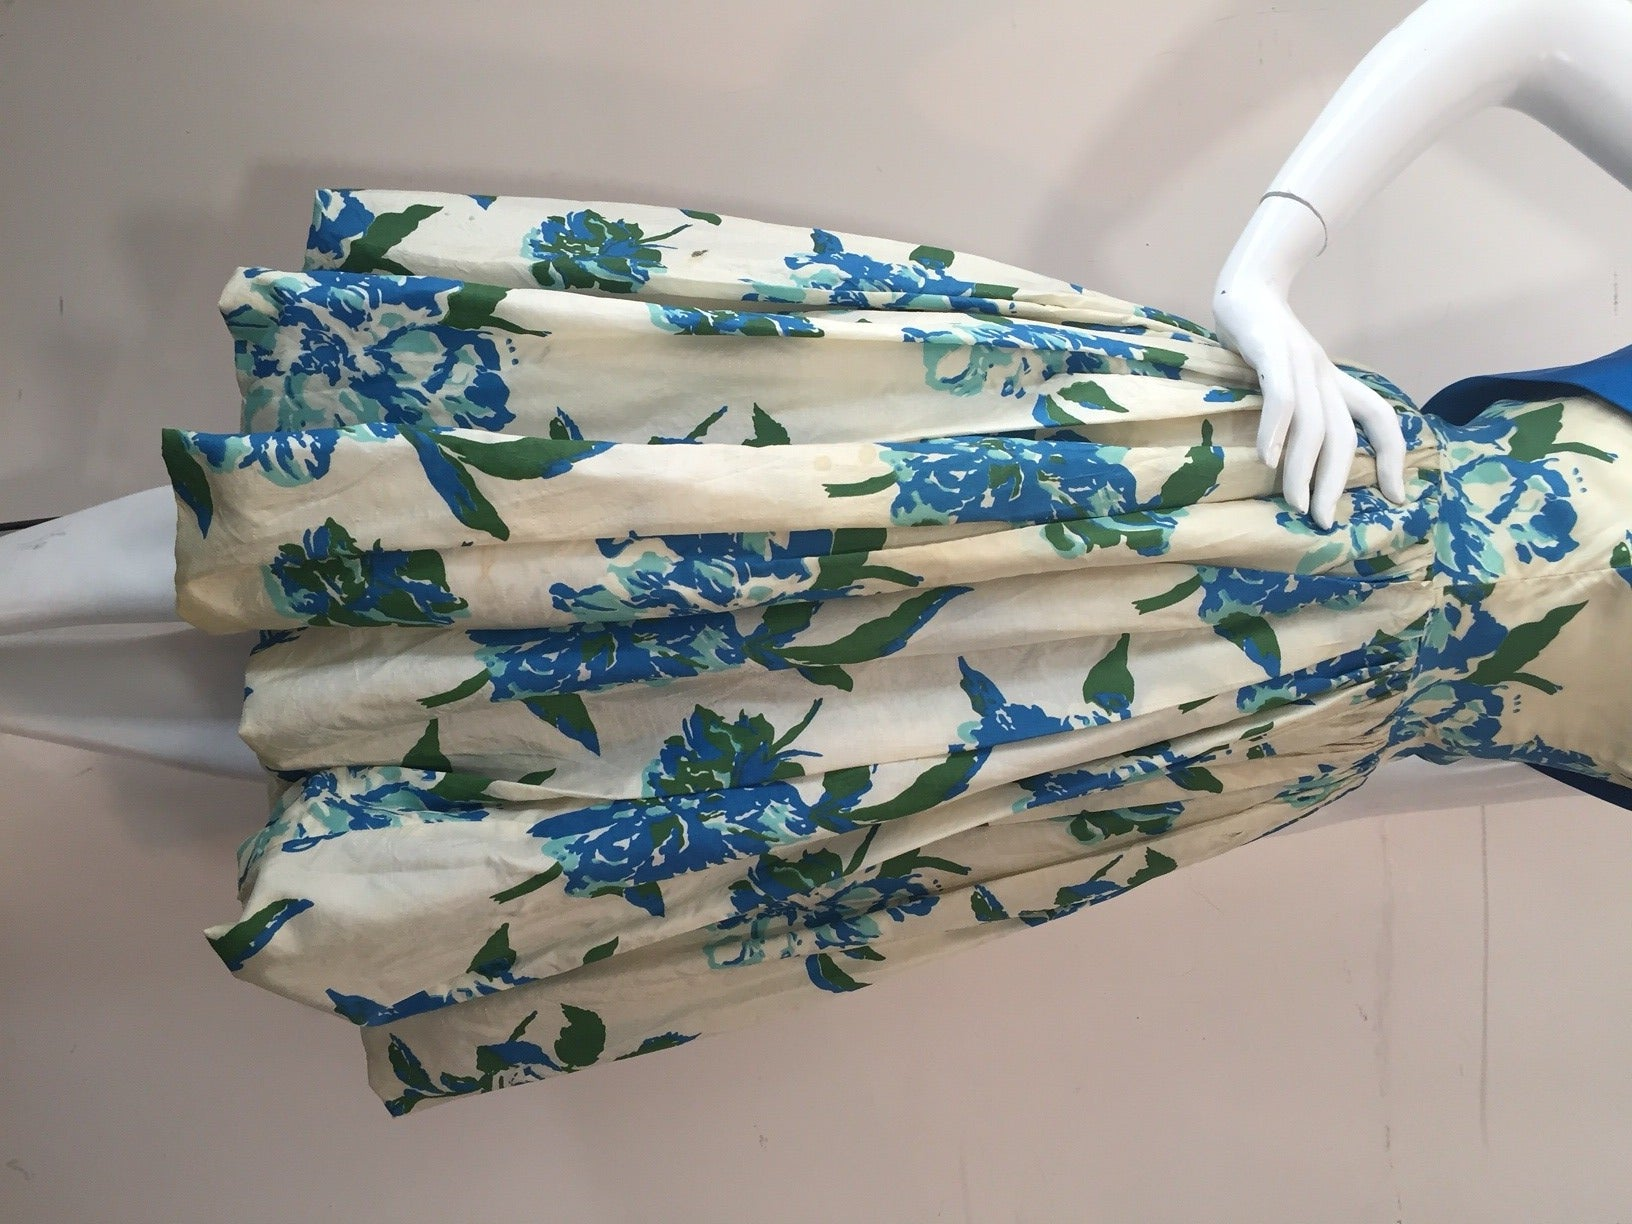 1950s Silk Floral Print Strapless Summer Dress in White, Blue and Green 5